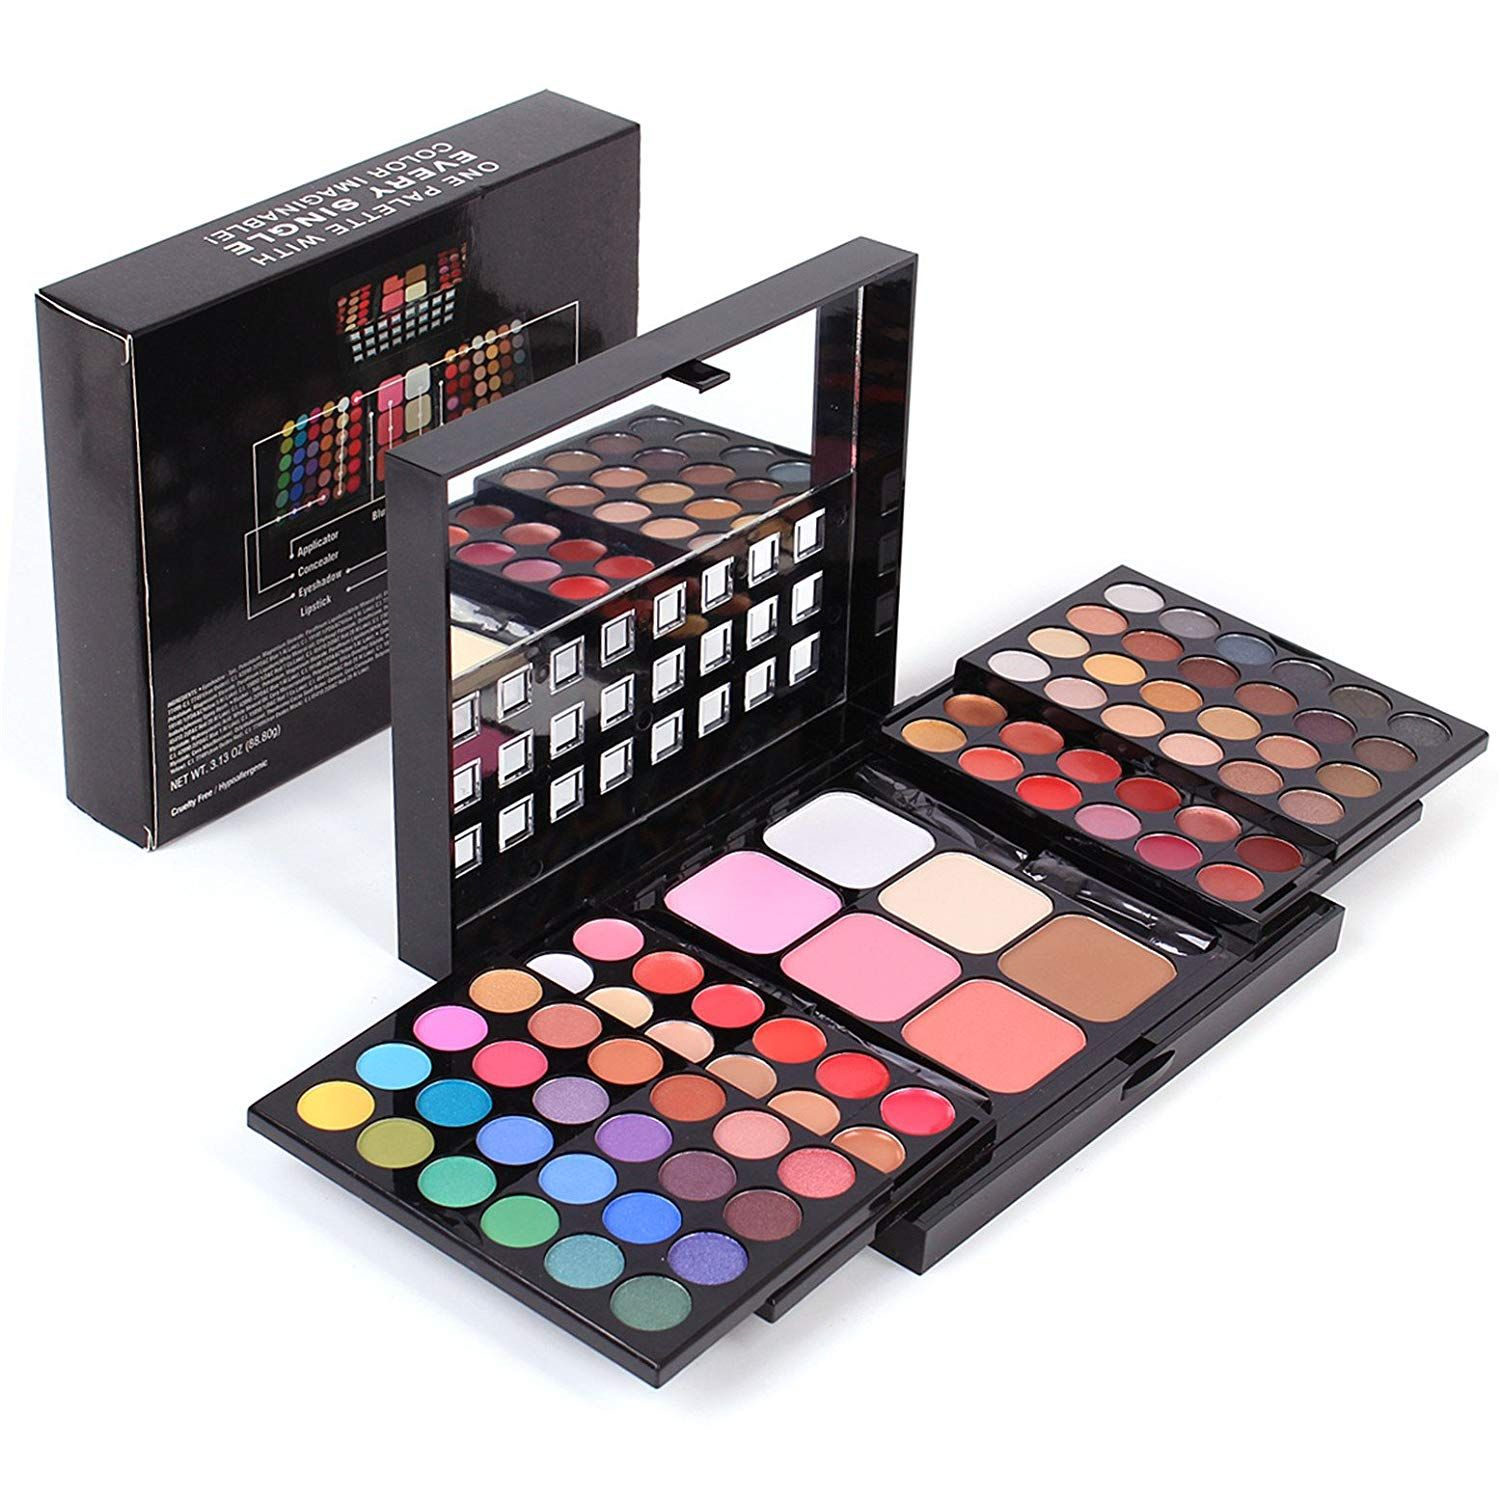 Fantasyday Pro Makeup Gift Set All In One Makeup Kit Cosmetic Contouring Kit 78 Colors In 2020 Makeup Kit Makeup Gift Sets Makeup Gift